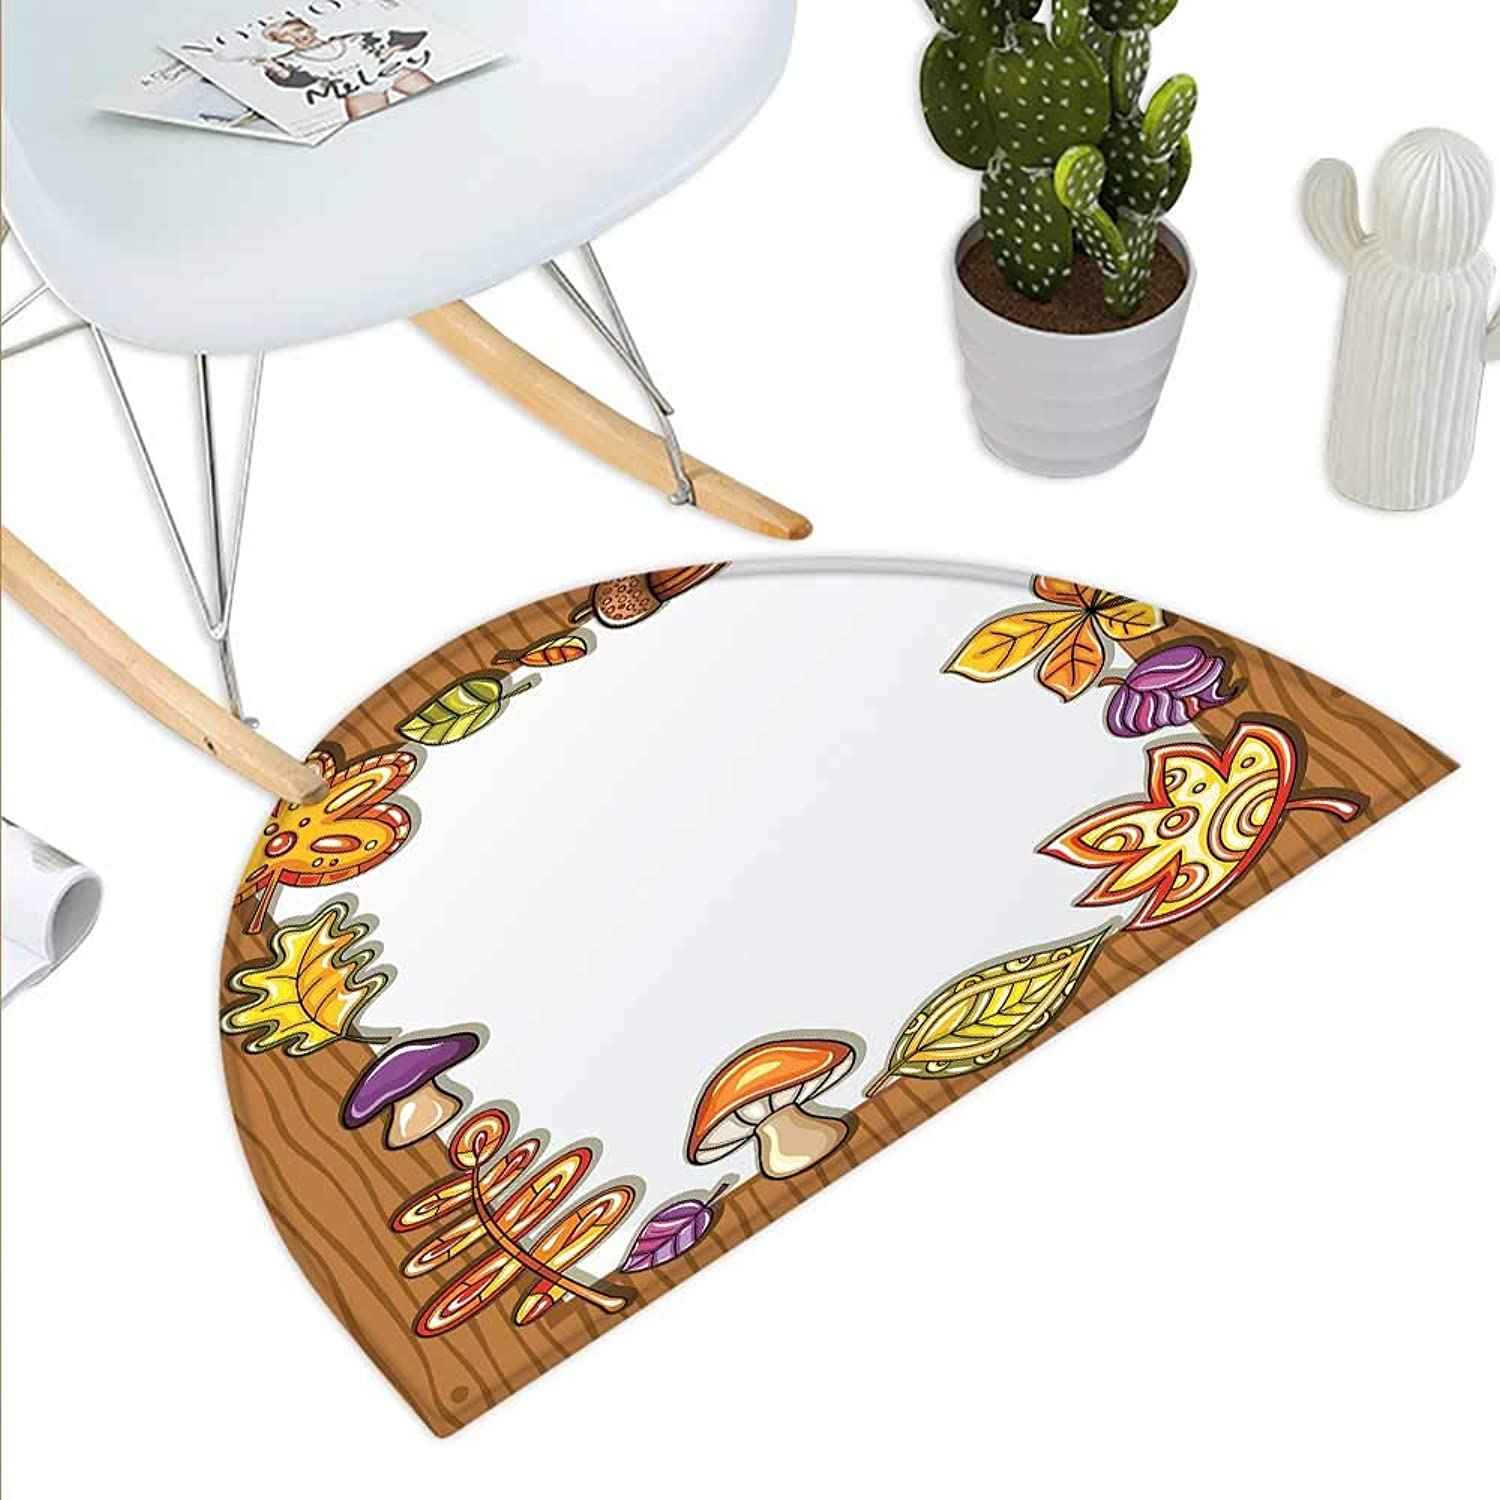 Harvest Semicircle Doormat Frame with Autumnal Nature Symbols on Wooden Background Cartoon Style Foliage Halfmoon doormats H 39.3  xD 59  Brown Multicolor